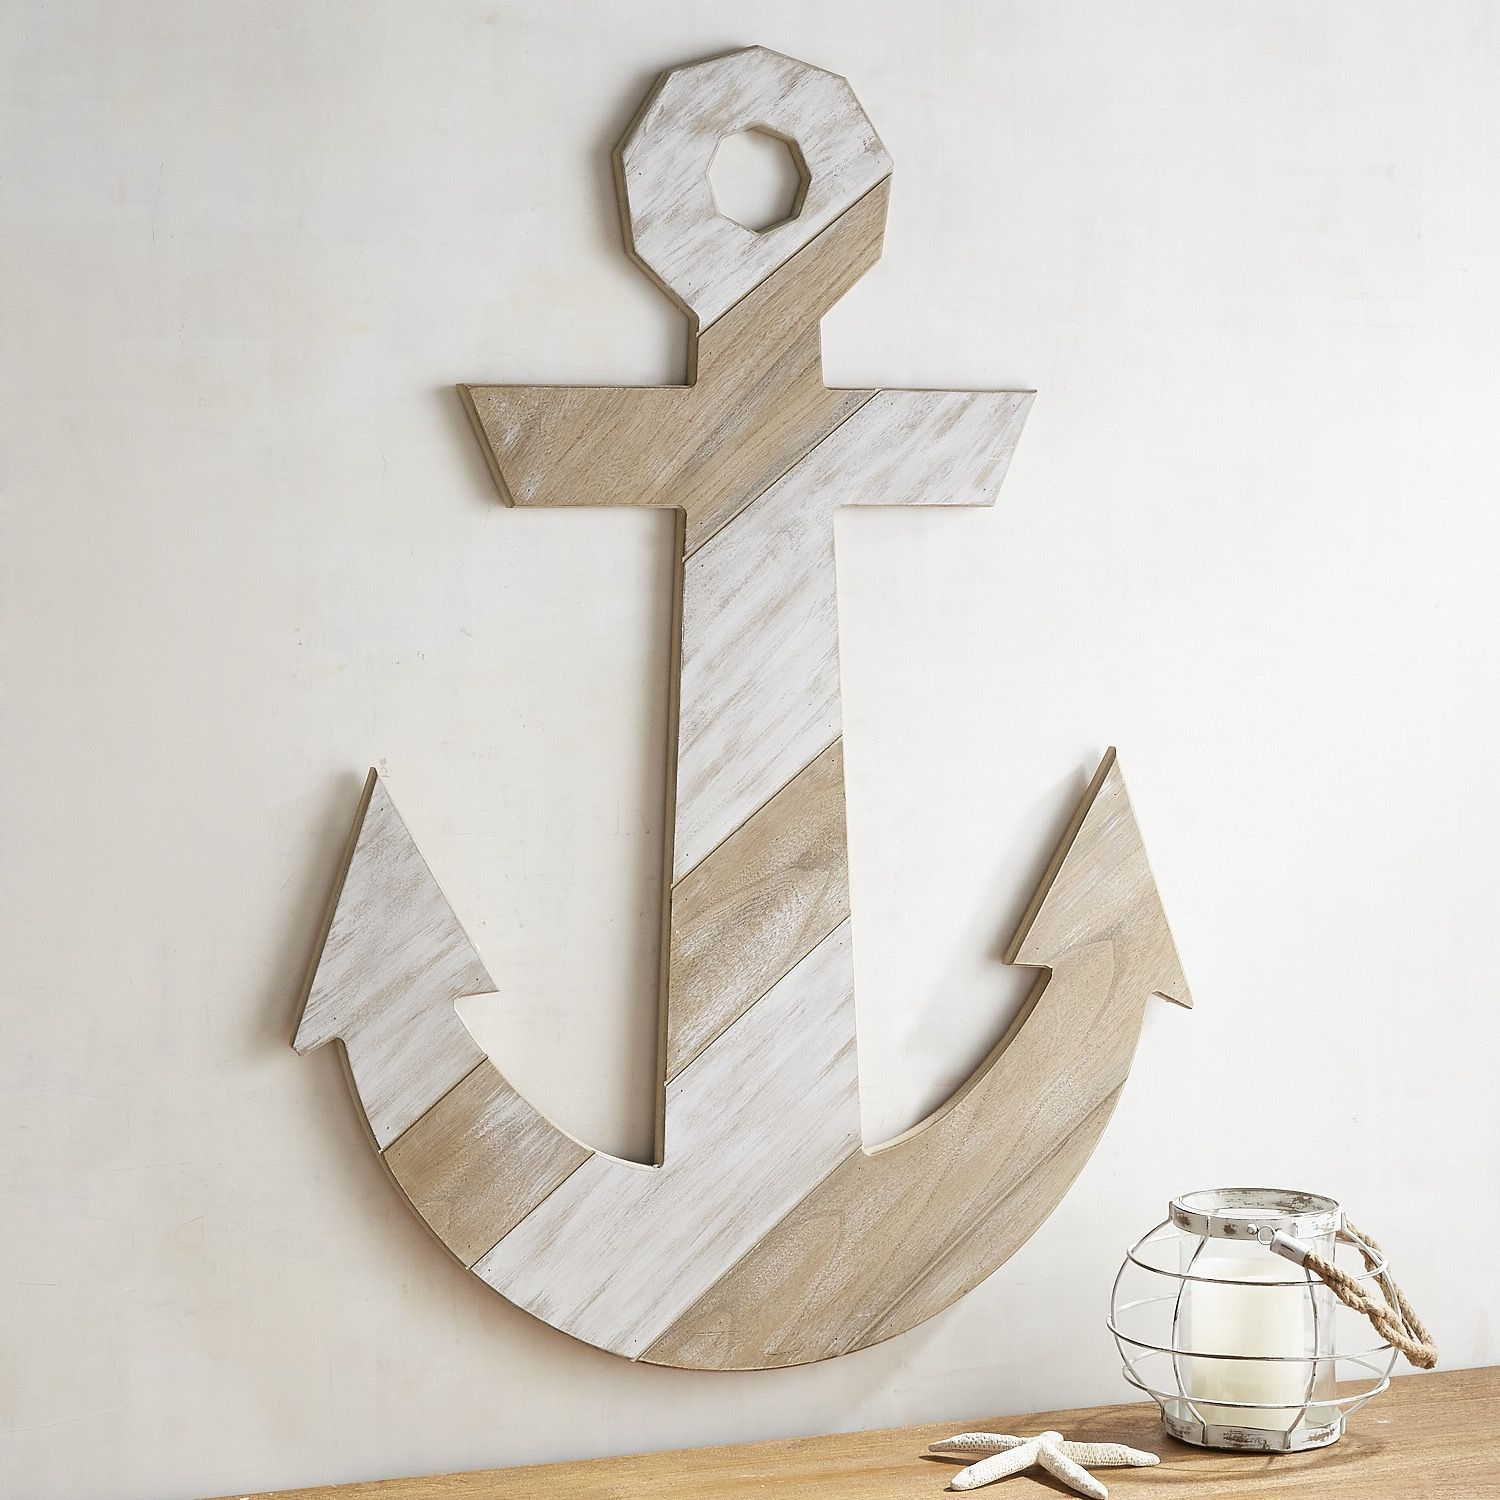 Rustic White Wood Planked Anchor Wall Decor Anchor Wall Decor Antique Wall Decor Wooden Decor